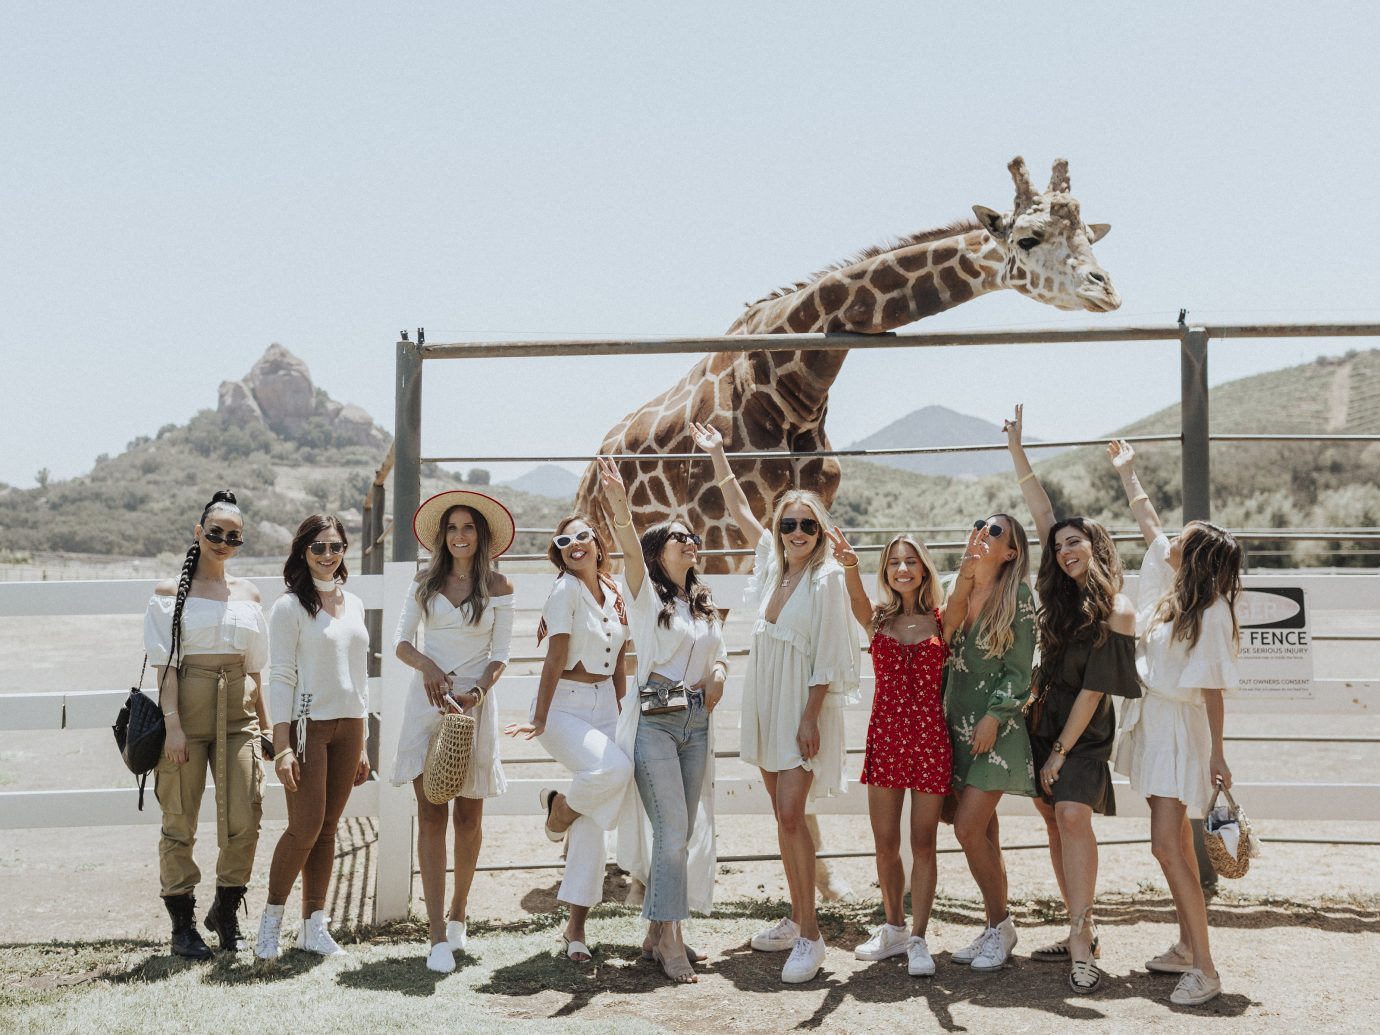 group of girls posing in front of giraffe